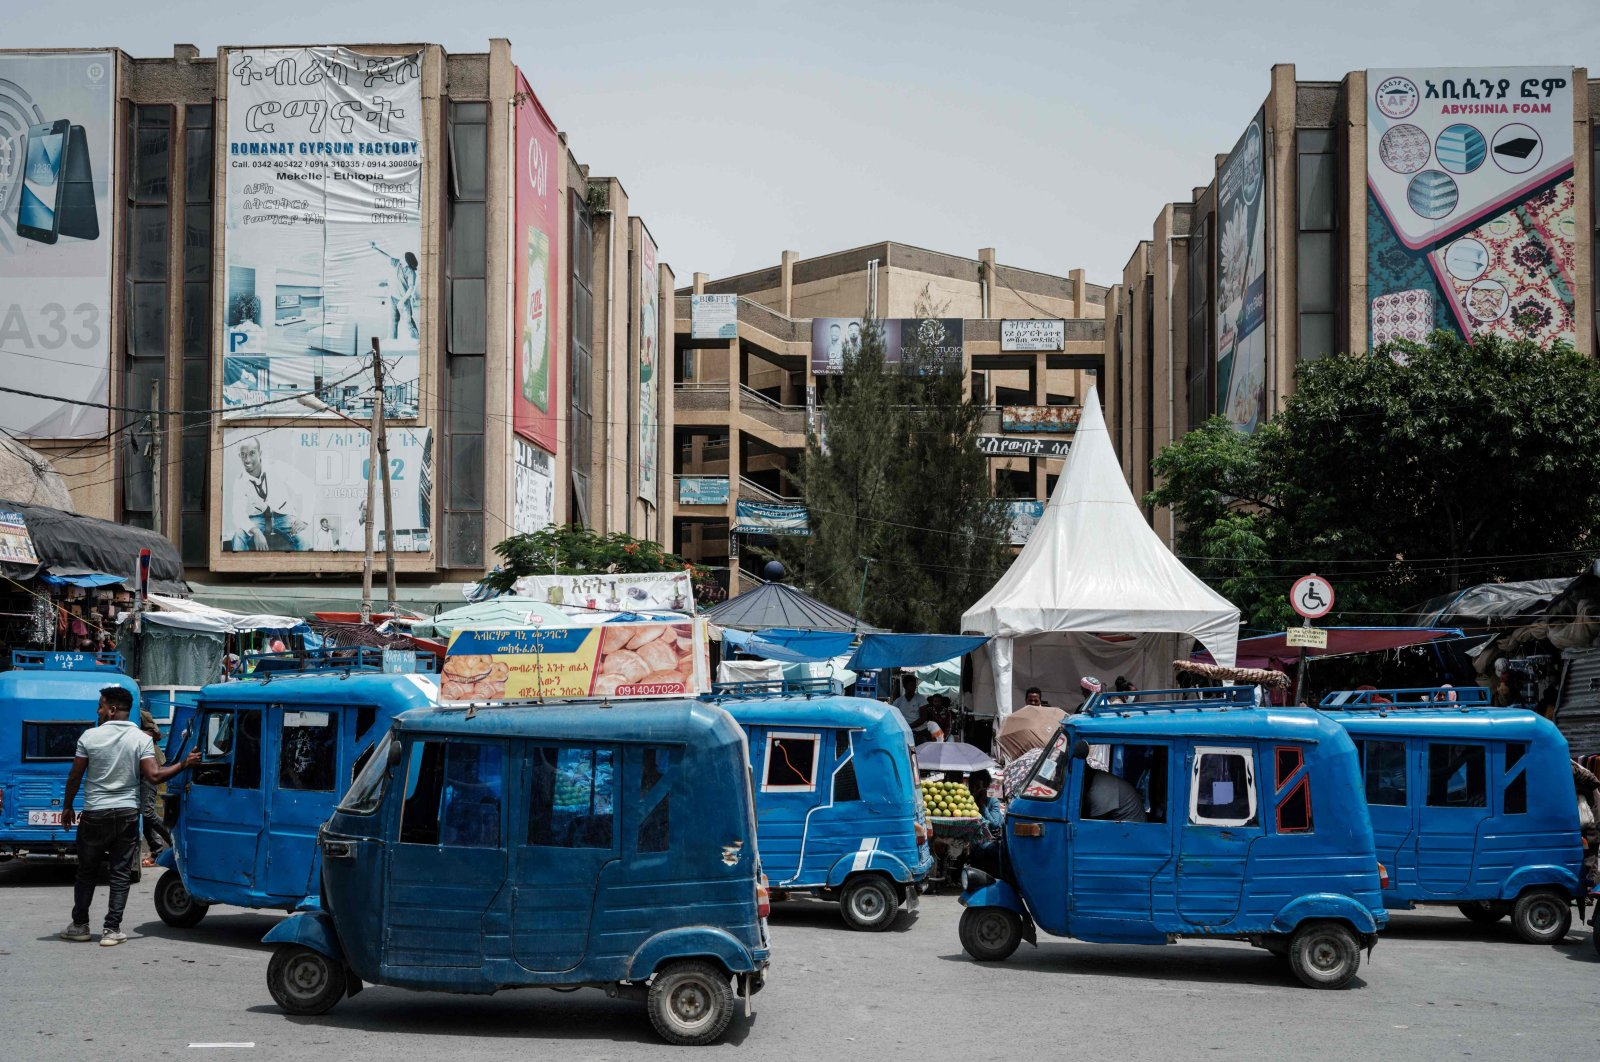 Motor tricycles wait for customers next to the downtown market in Mekele, the capital of Tigray region, Ethiopia, June 25, 2021. (AFP Photo)